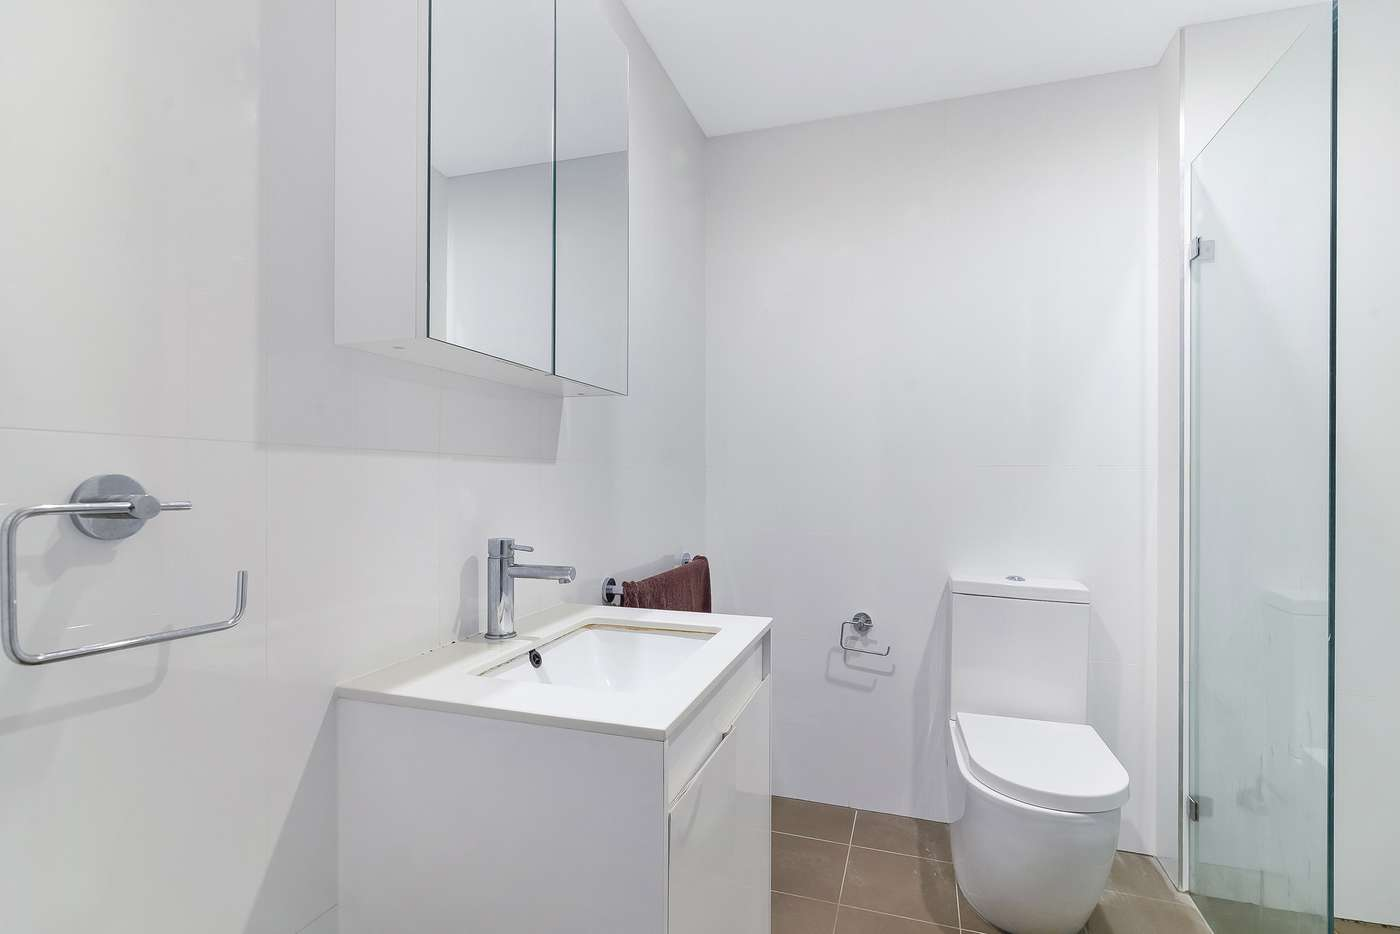 Sixth view of Homely apartment listing, 22/30-34 Chalmers Street, Surry Hills NSW 2010